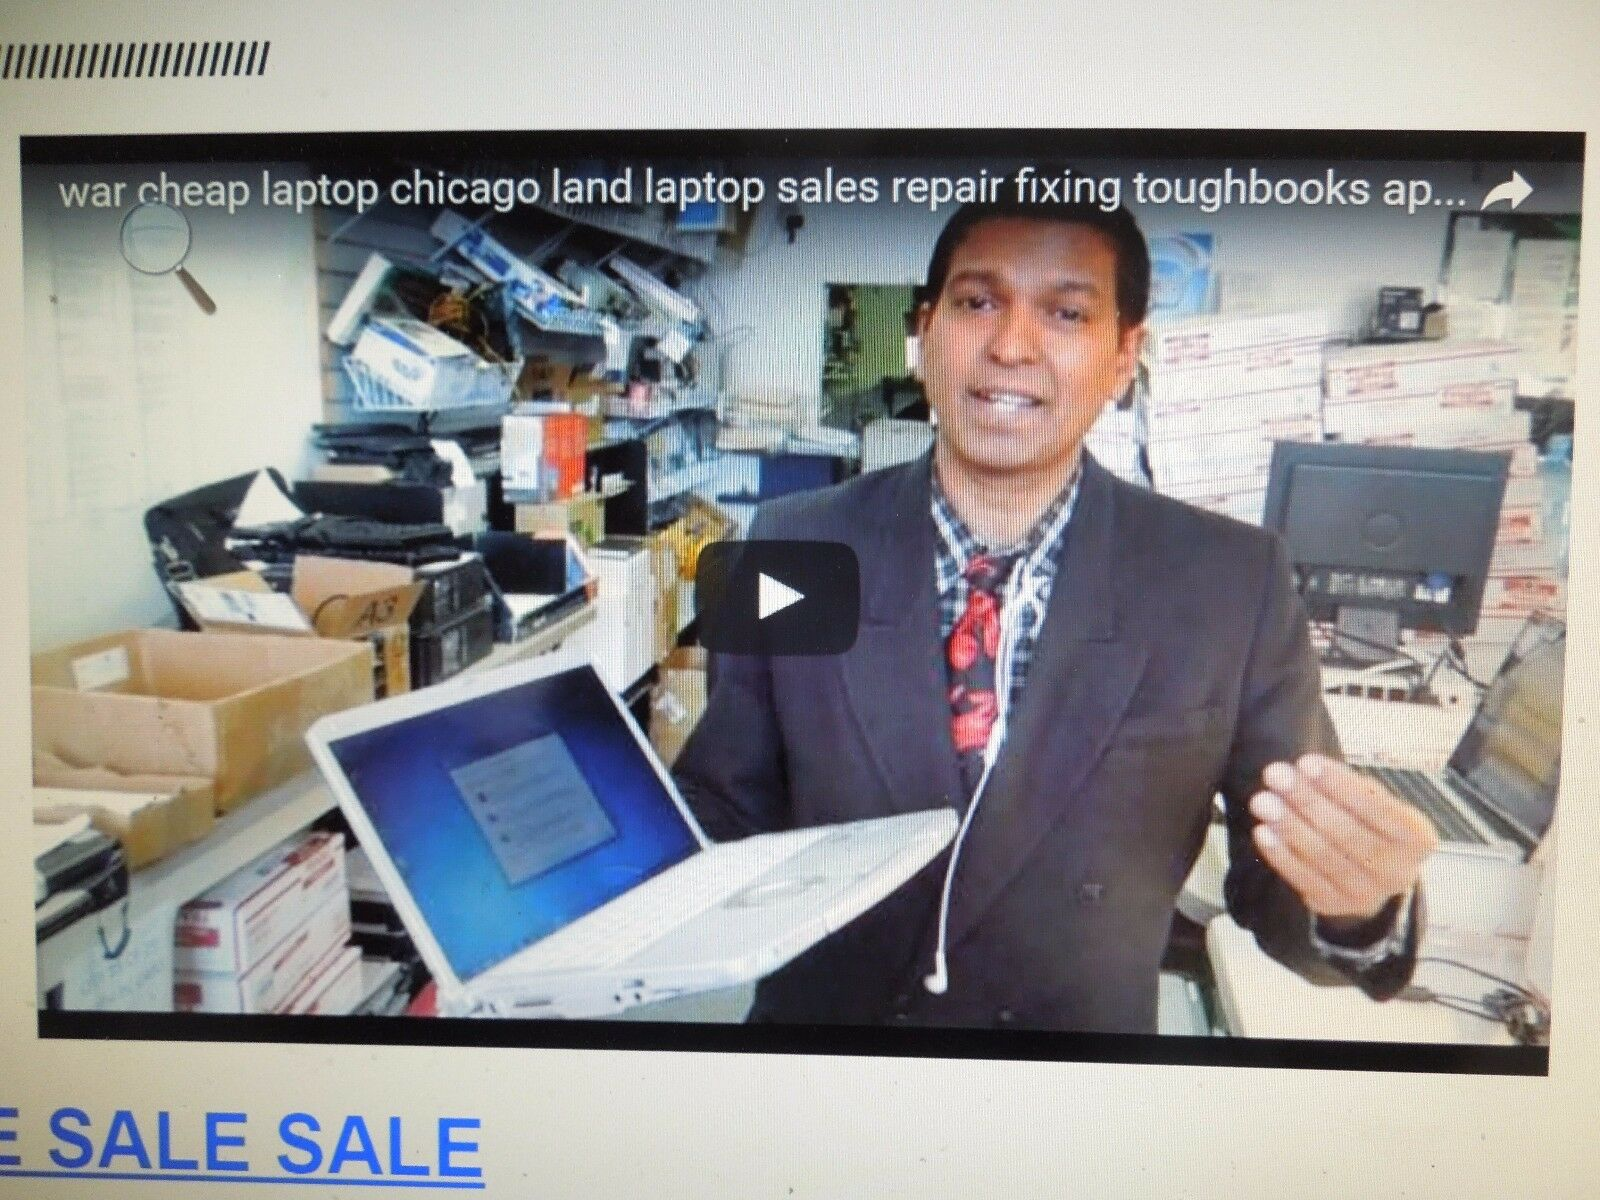 SSD/ANSI HAZ LOC/mk7/Panasonic Toughbook CF-19/core i5/8GB/Win 10 /WAR CHEAP